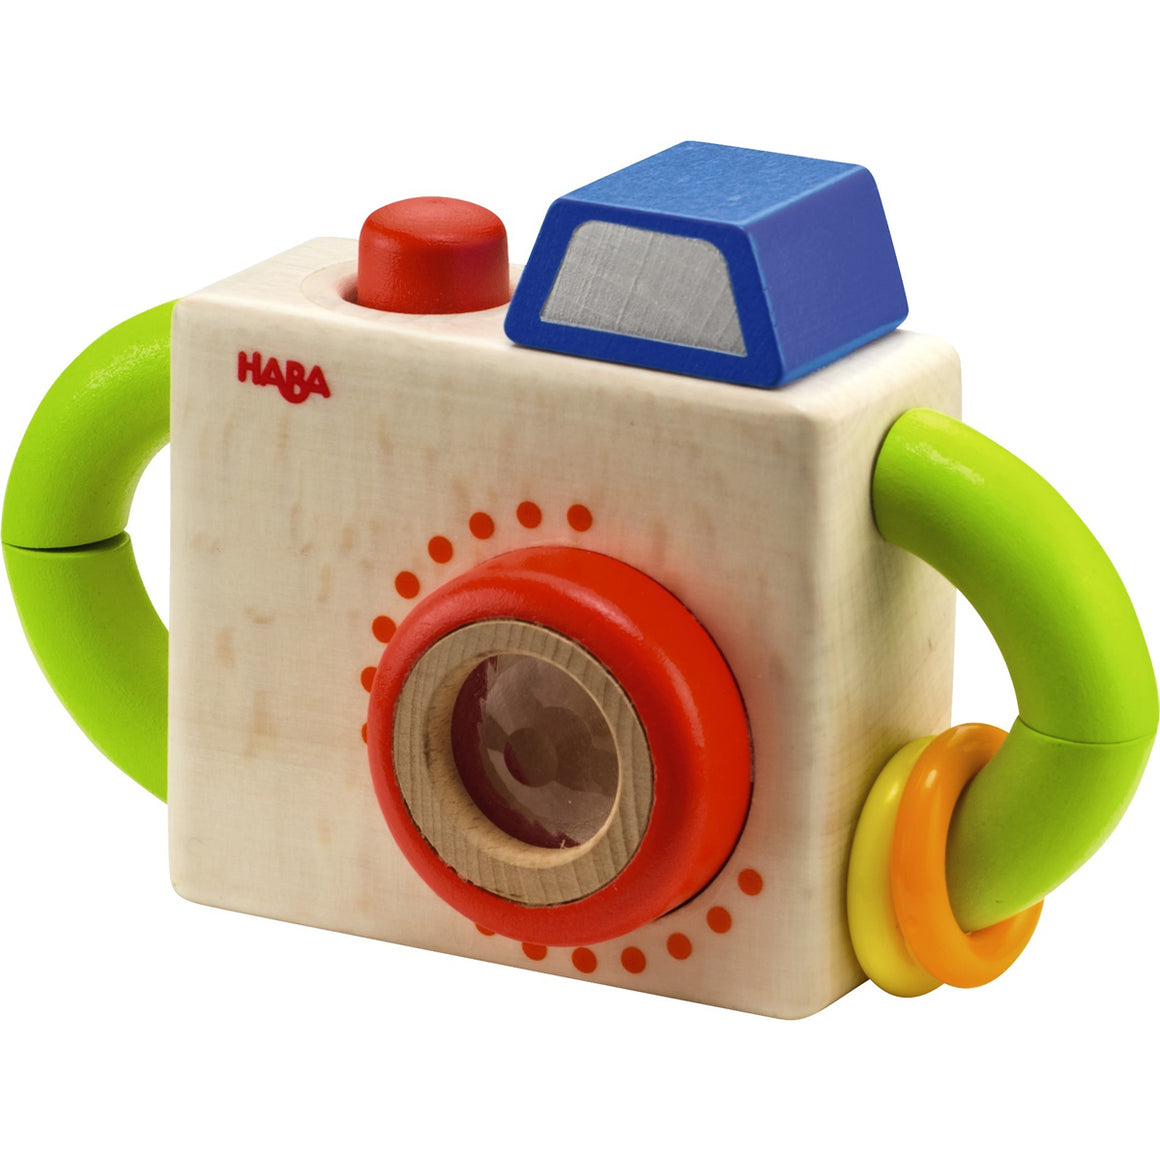 HABA Capture Fun Camera is colorful with bright green handles and a red button that squeaks when pressed down